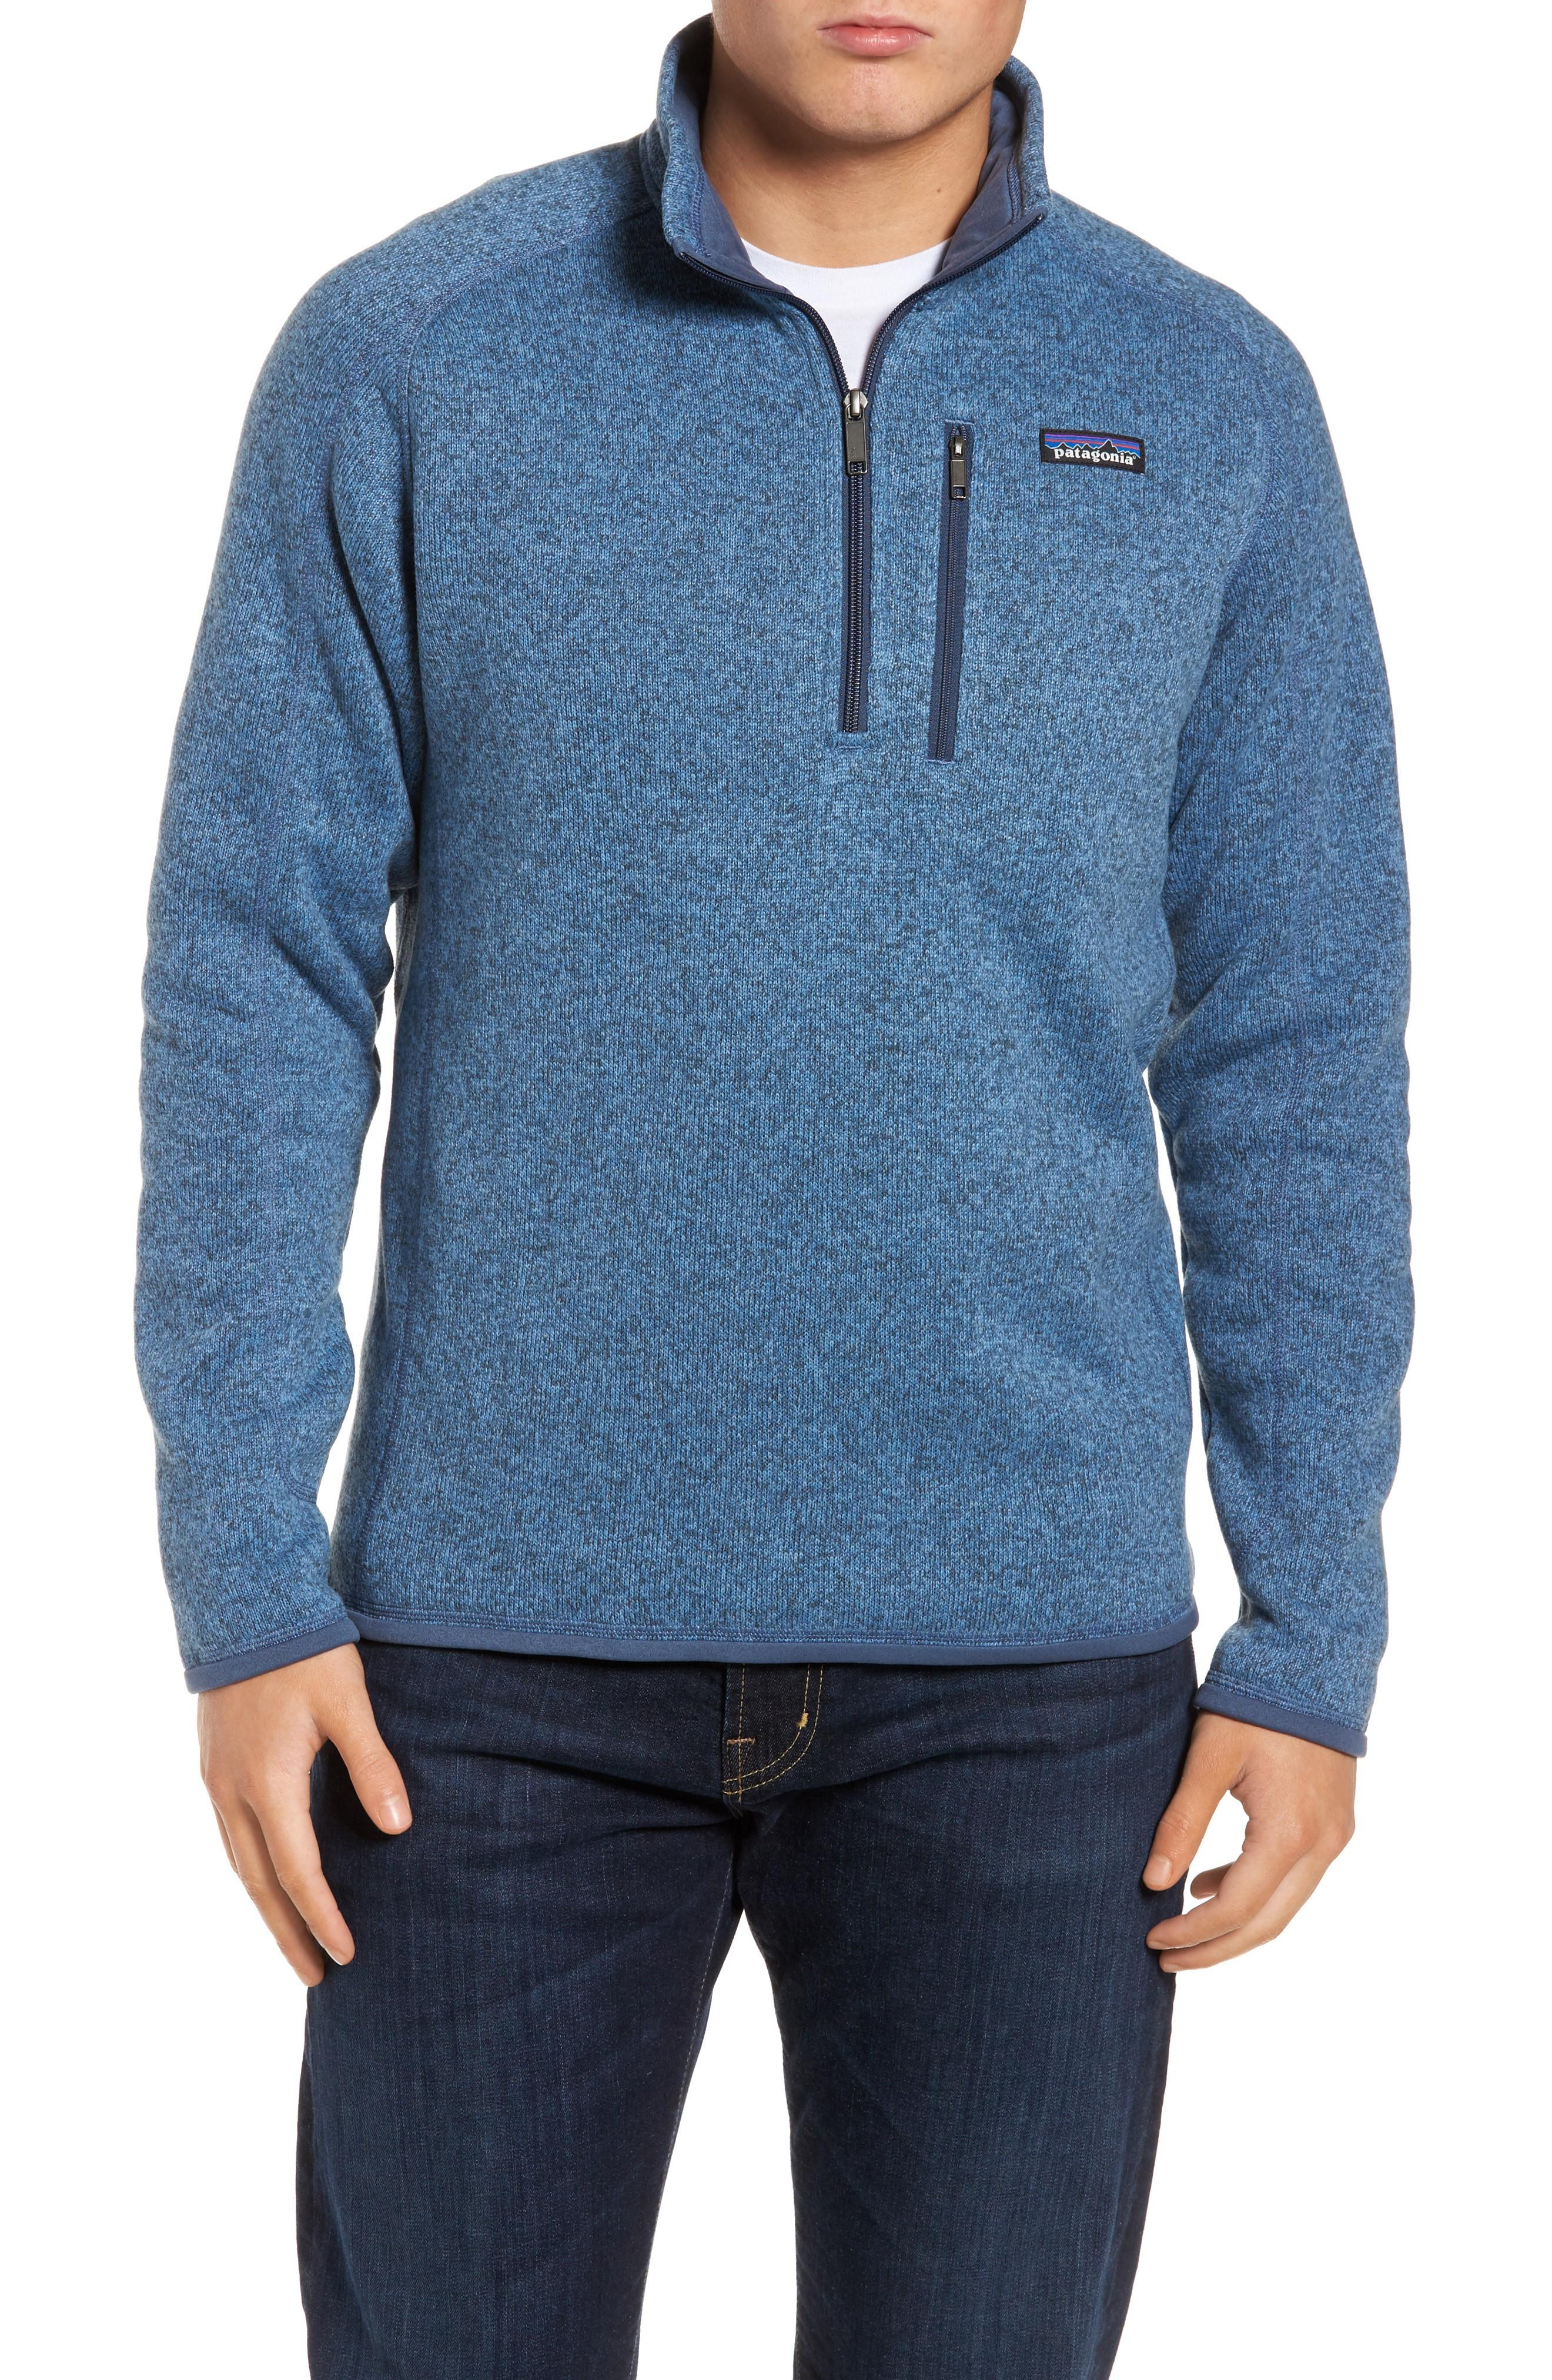 Patagonia 'better Sweater' Quarter Zip Pullover In Railroad Blue